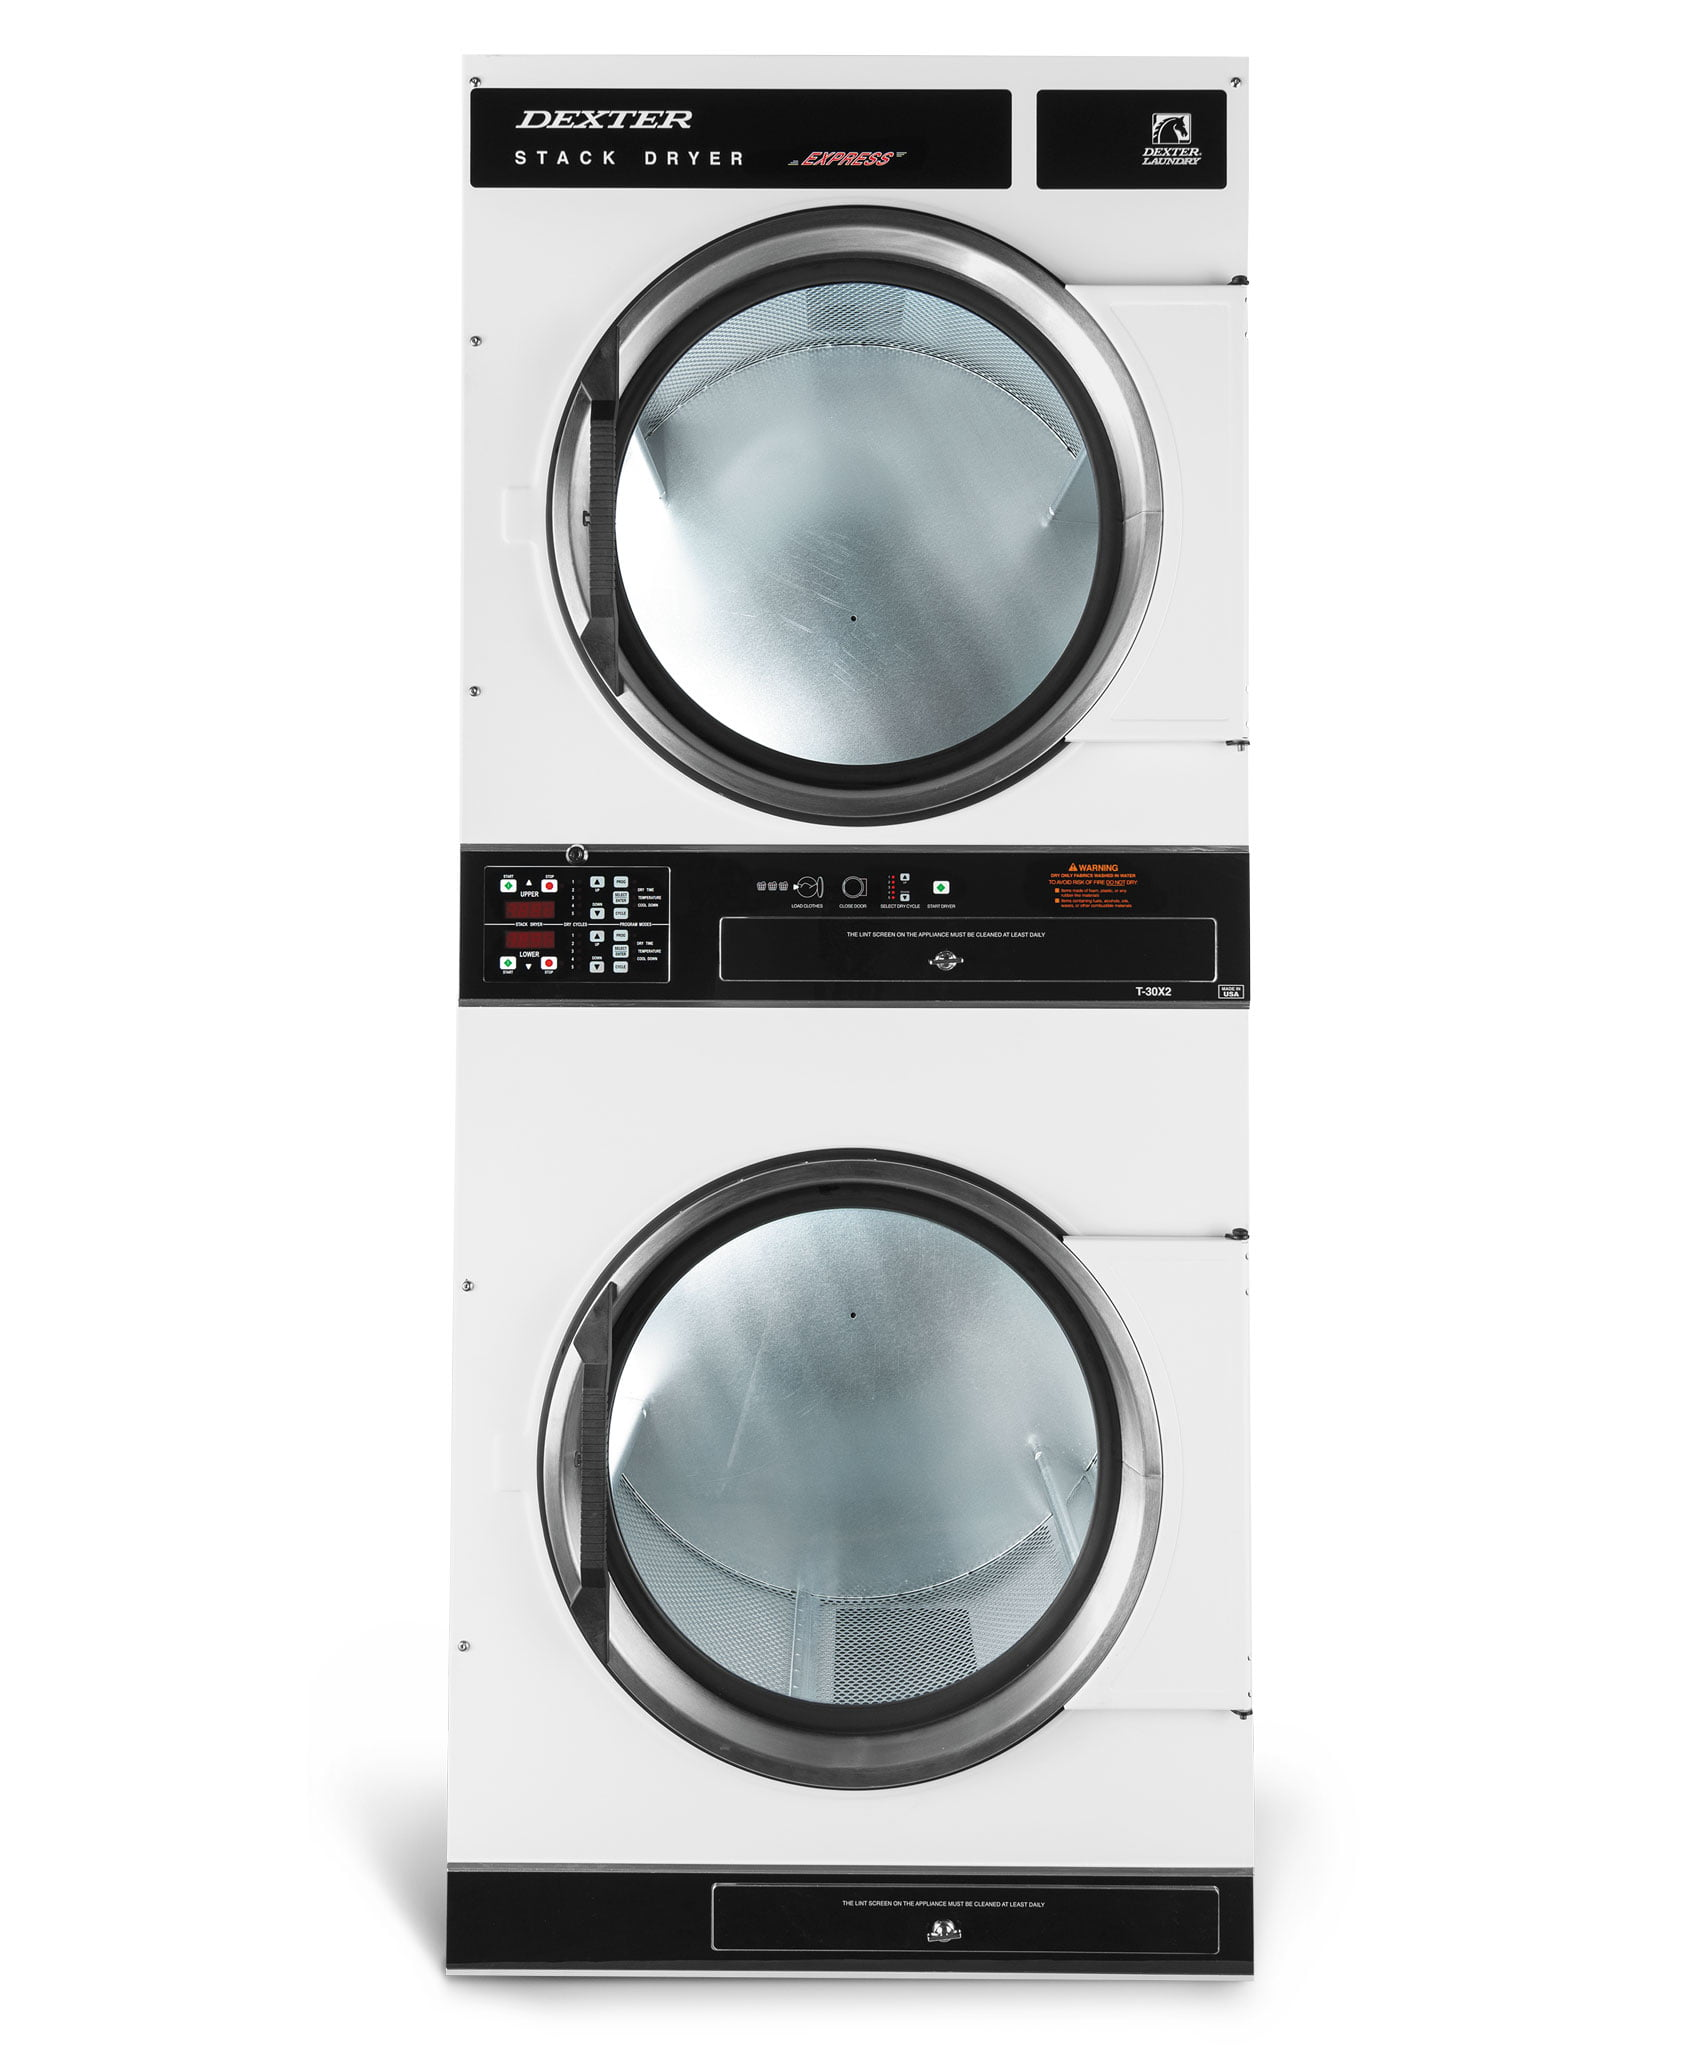 Dexter T-30x12 6 Cycle Product Image